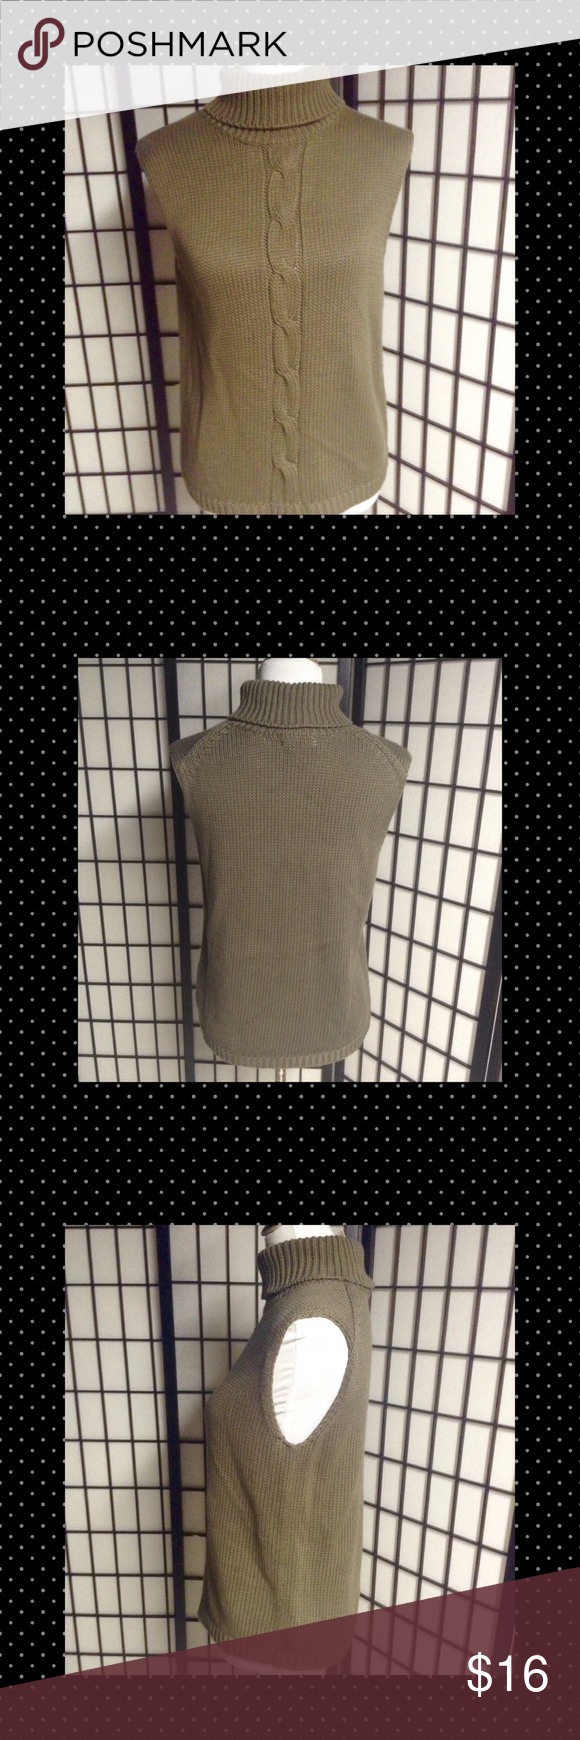 Eddie Bauer Sleeveless Turtleneck Sweater L NWT New dusty olive green 100% cotton sweater. It is sleeveless with a large turtleneck. There is a cable knit pattern down the front. This is beautiful! Eddie Bauer size L Eddie Bauer Tops